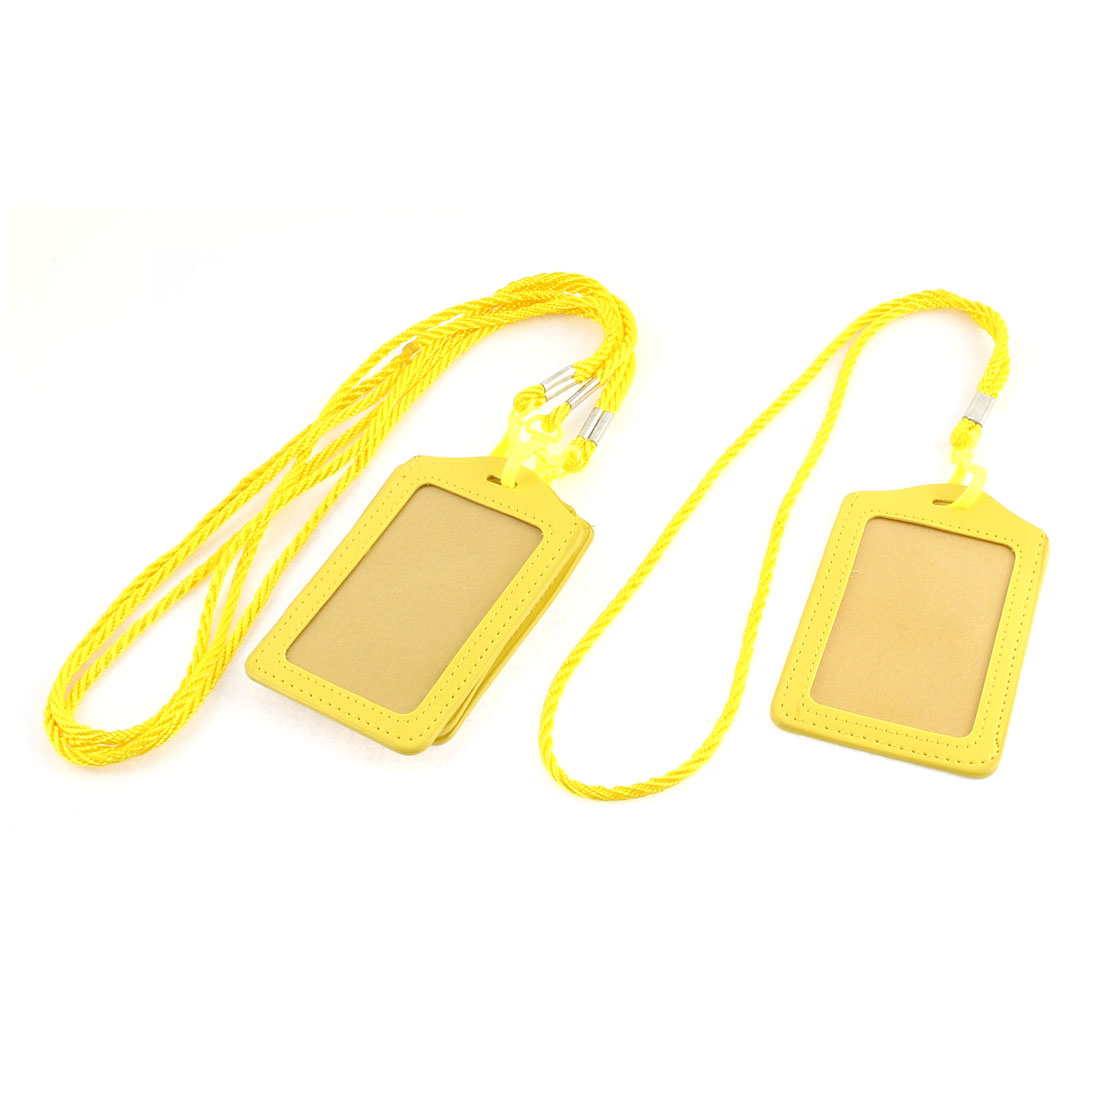 Faux Leather Lanyard Vertical Office Name ID Card Badge Holder Container Yellow 4pcs